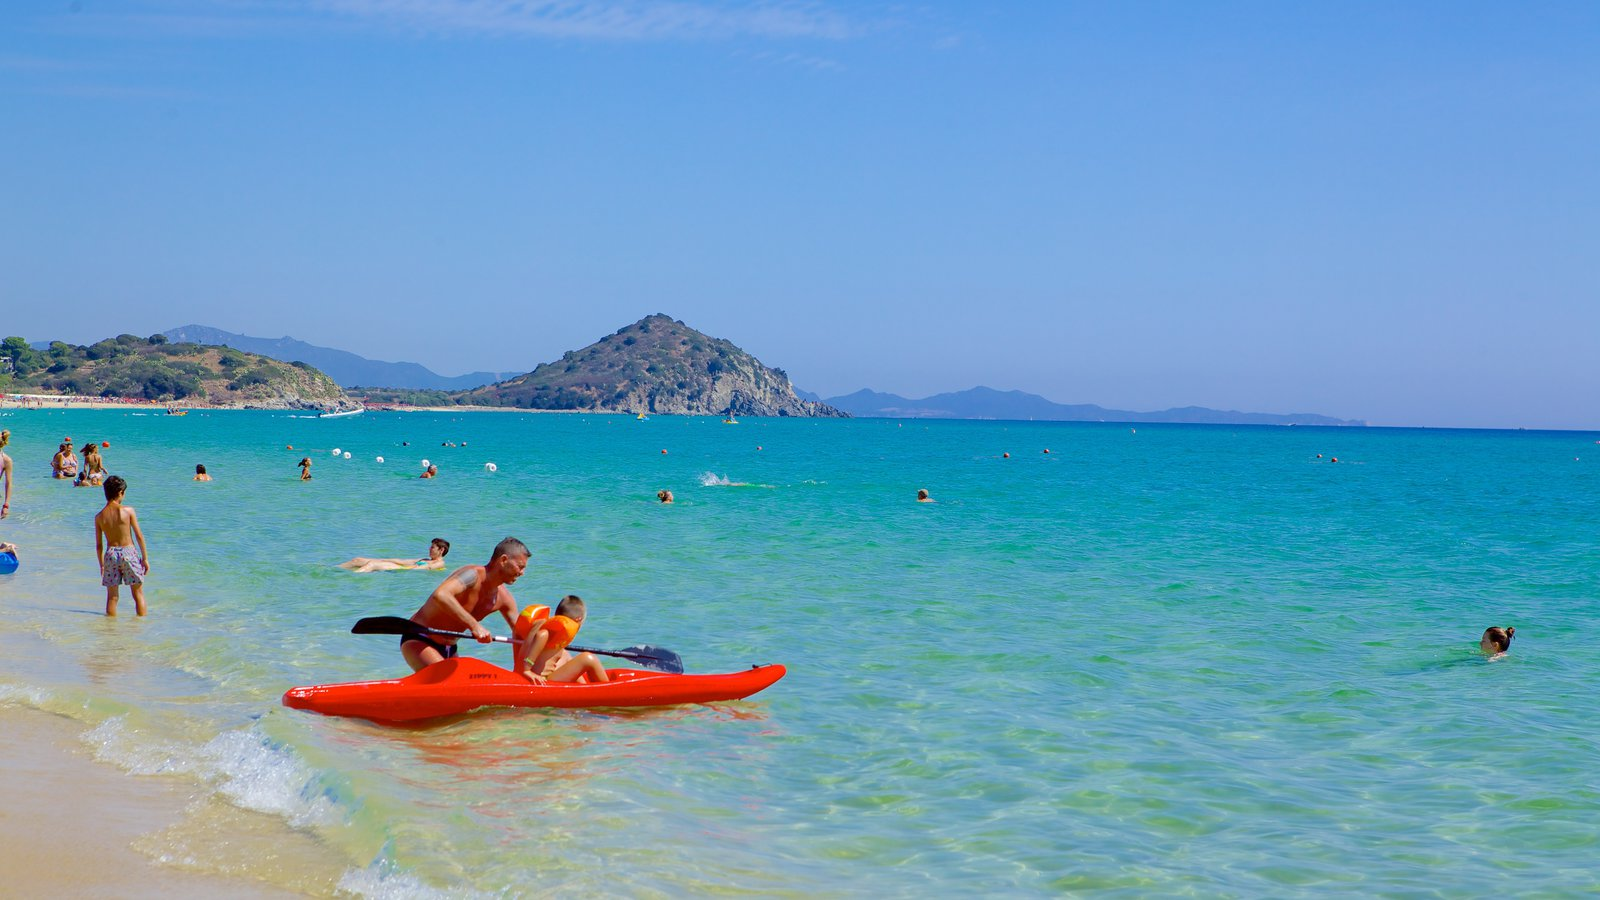 Cala Sinzias showing a beach and kayaking or canoeing